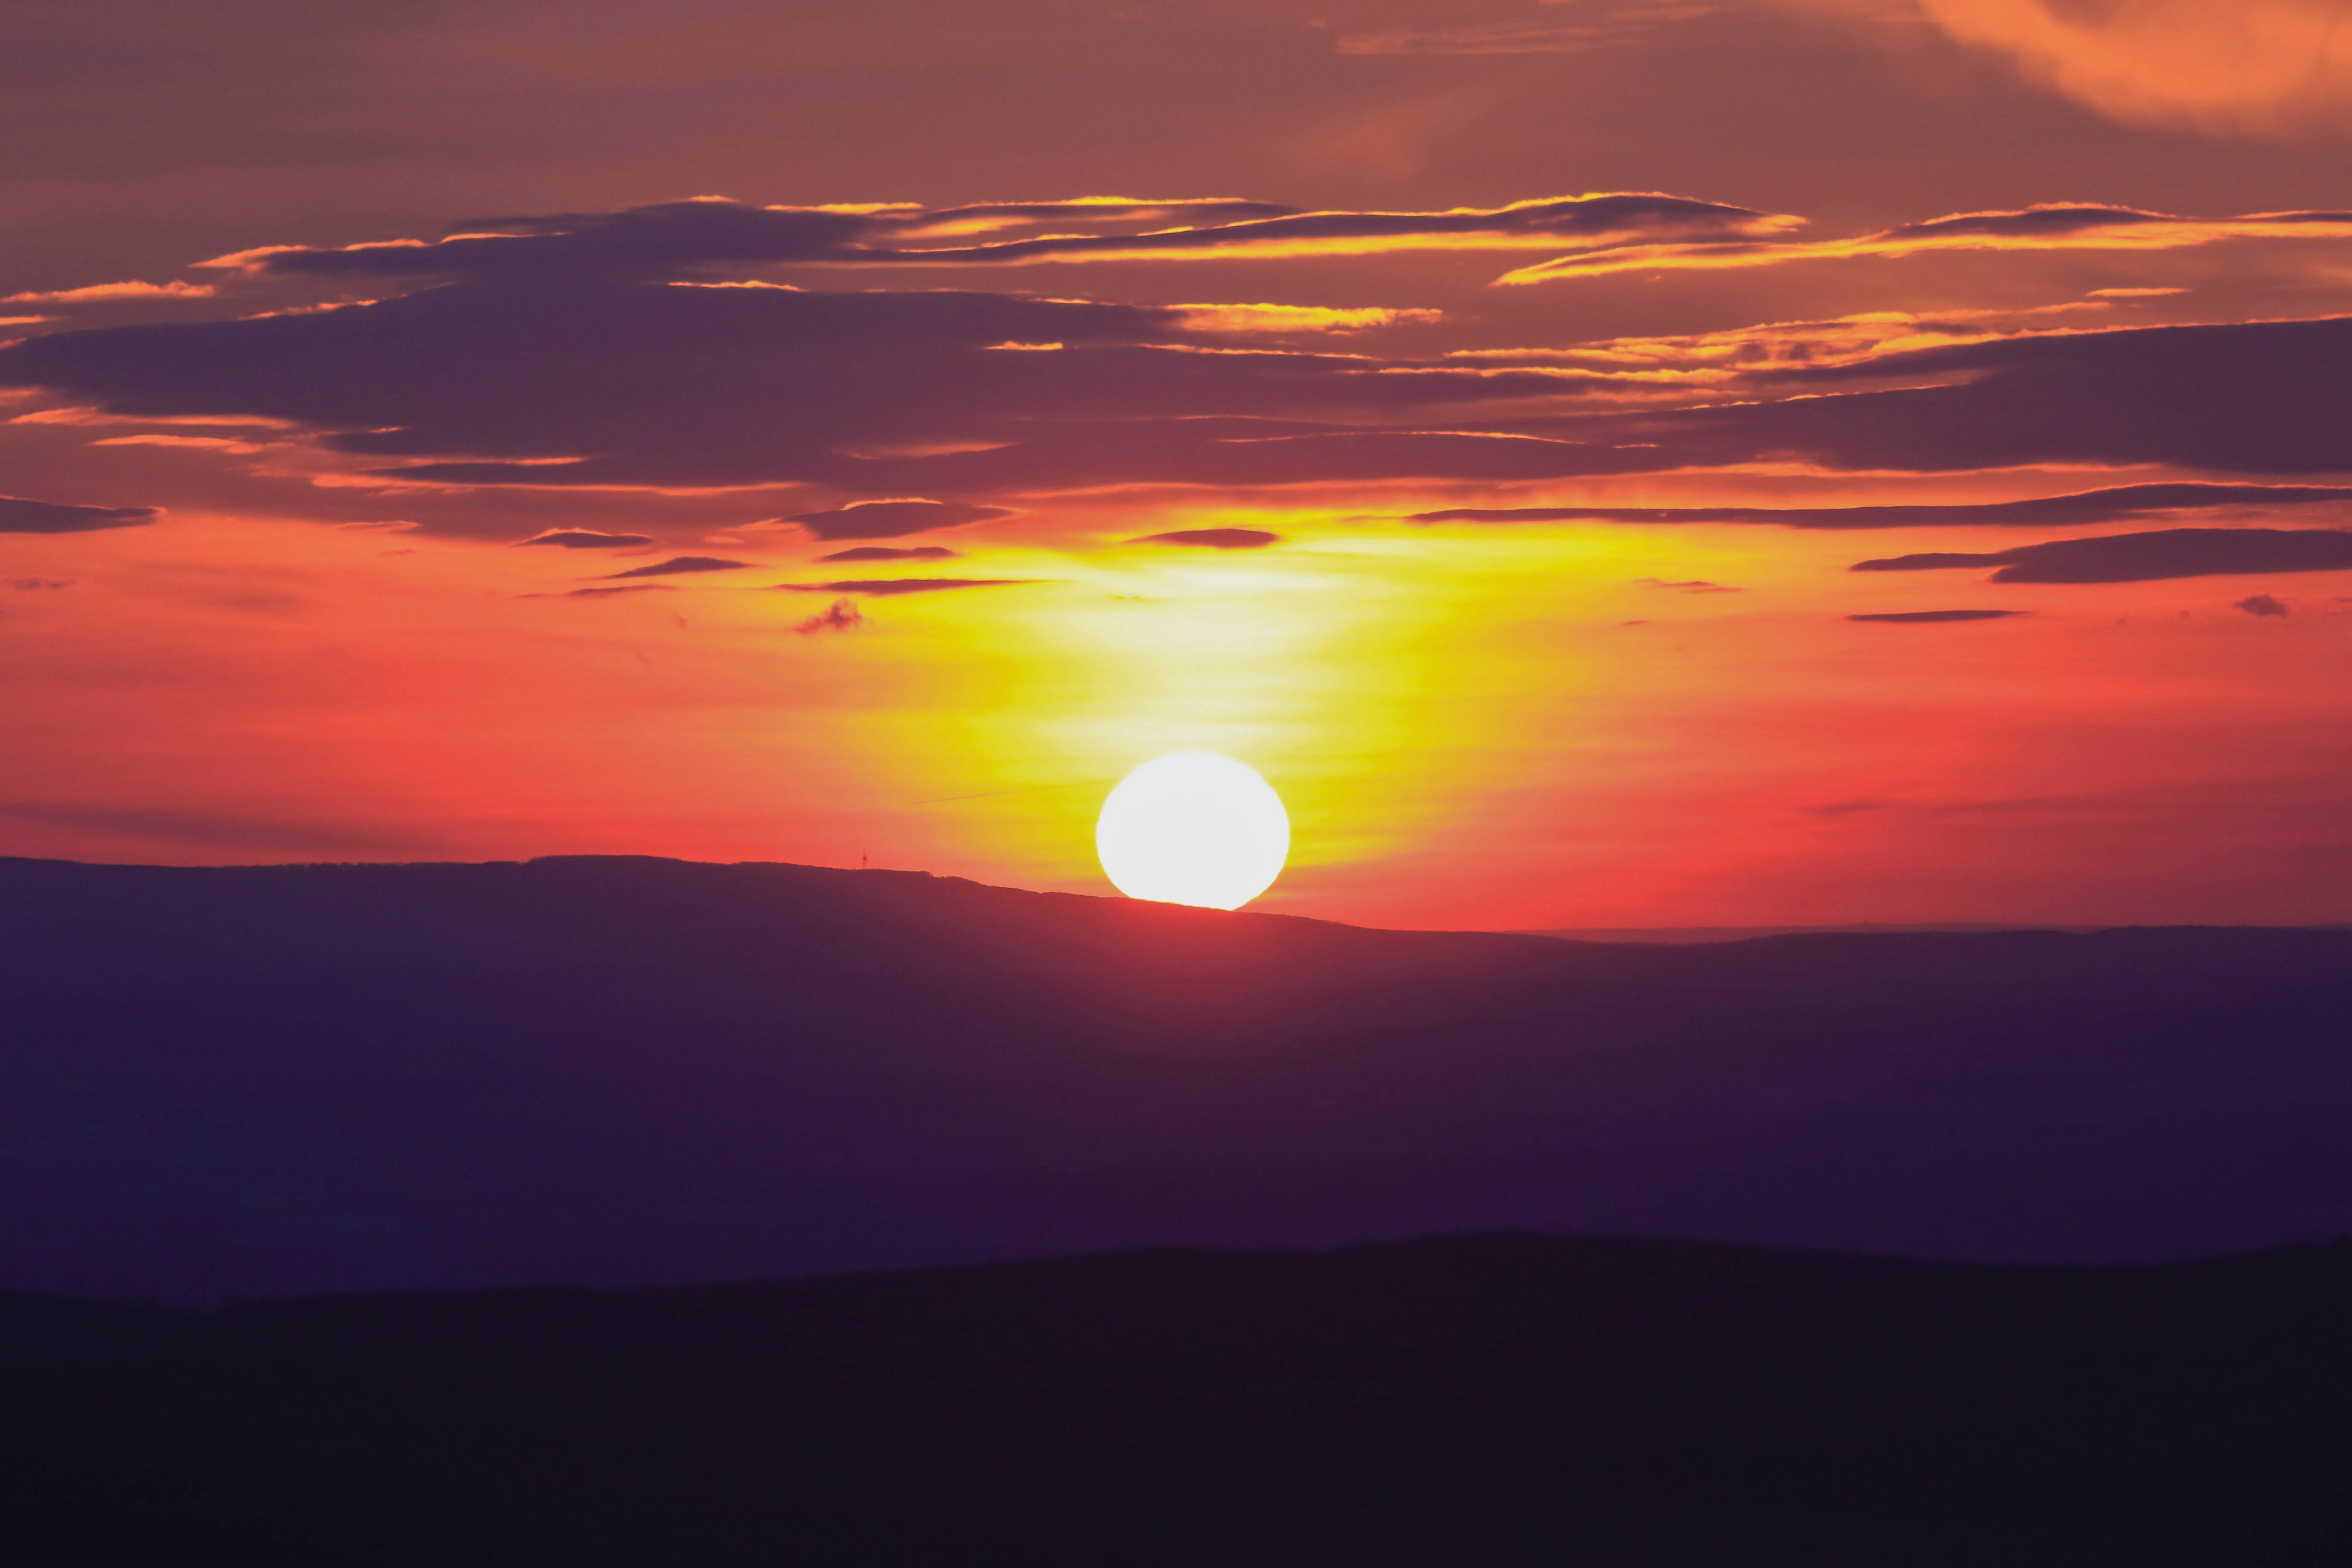 A red and orange sunset with the hills on the horizon in silhouette at Elizabeth Lookout.